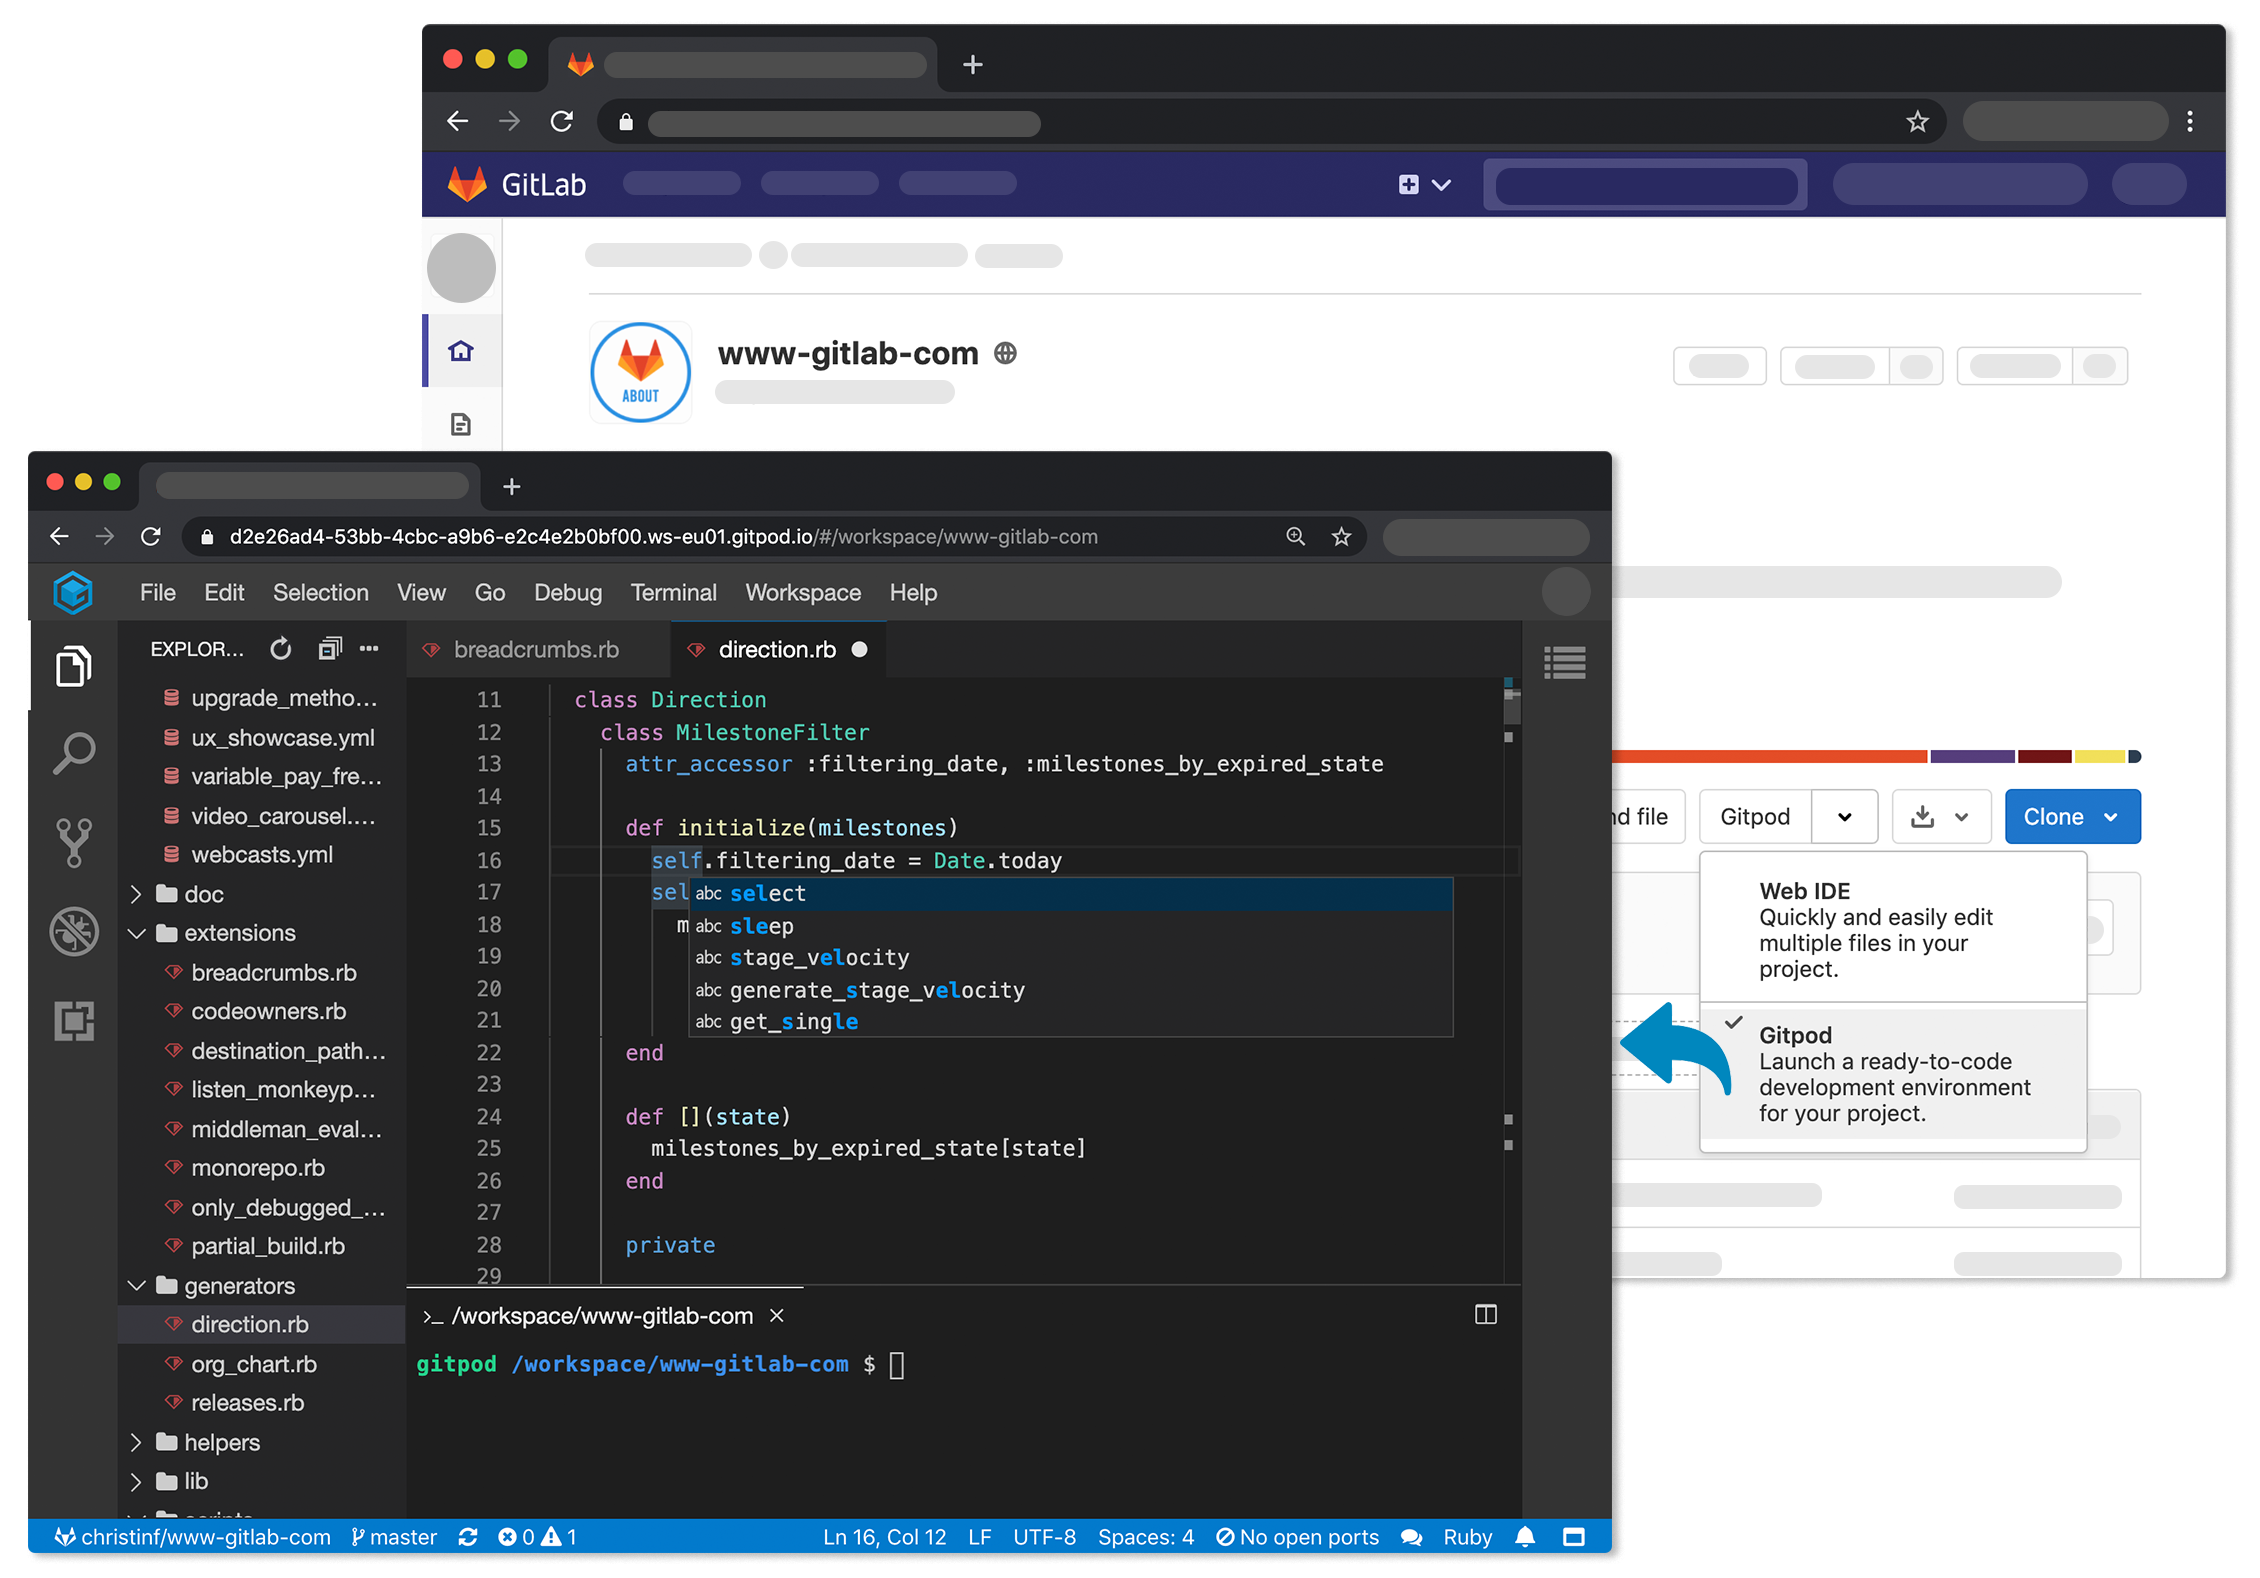 Launching a Gitpod instance from within GitLab